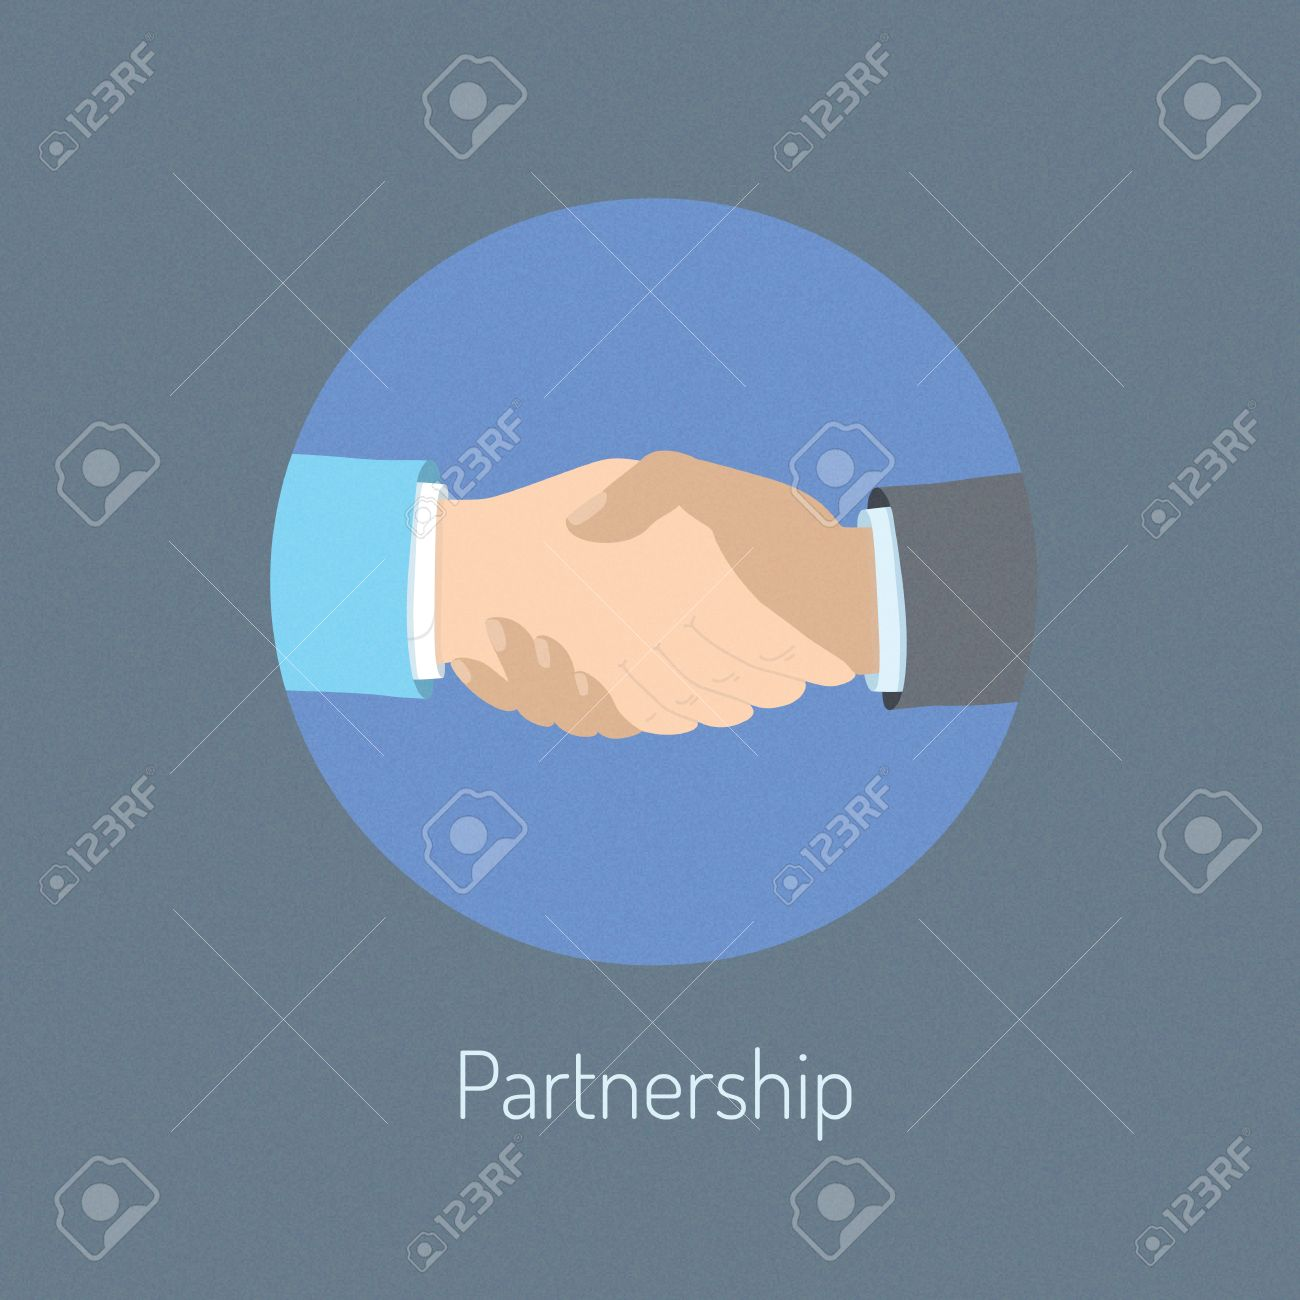 Flat design vector illustration poster concept of two business people hand shaking which  symbolizing partnership cooperation and success deal negotiation  Isolated on stylish background Stock Vector - 24027953